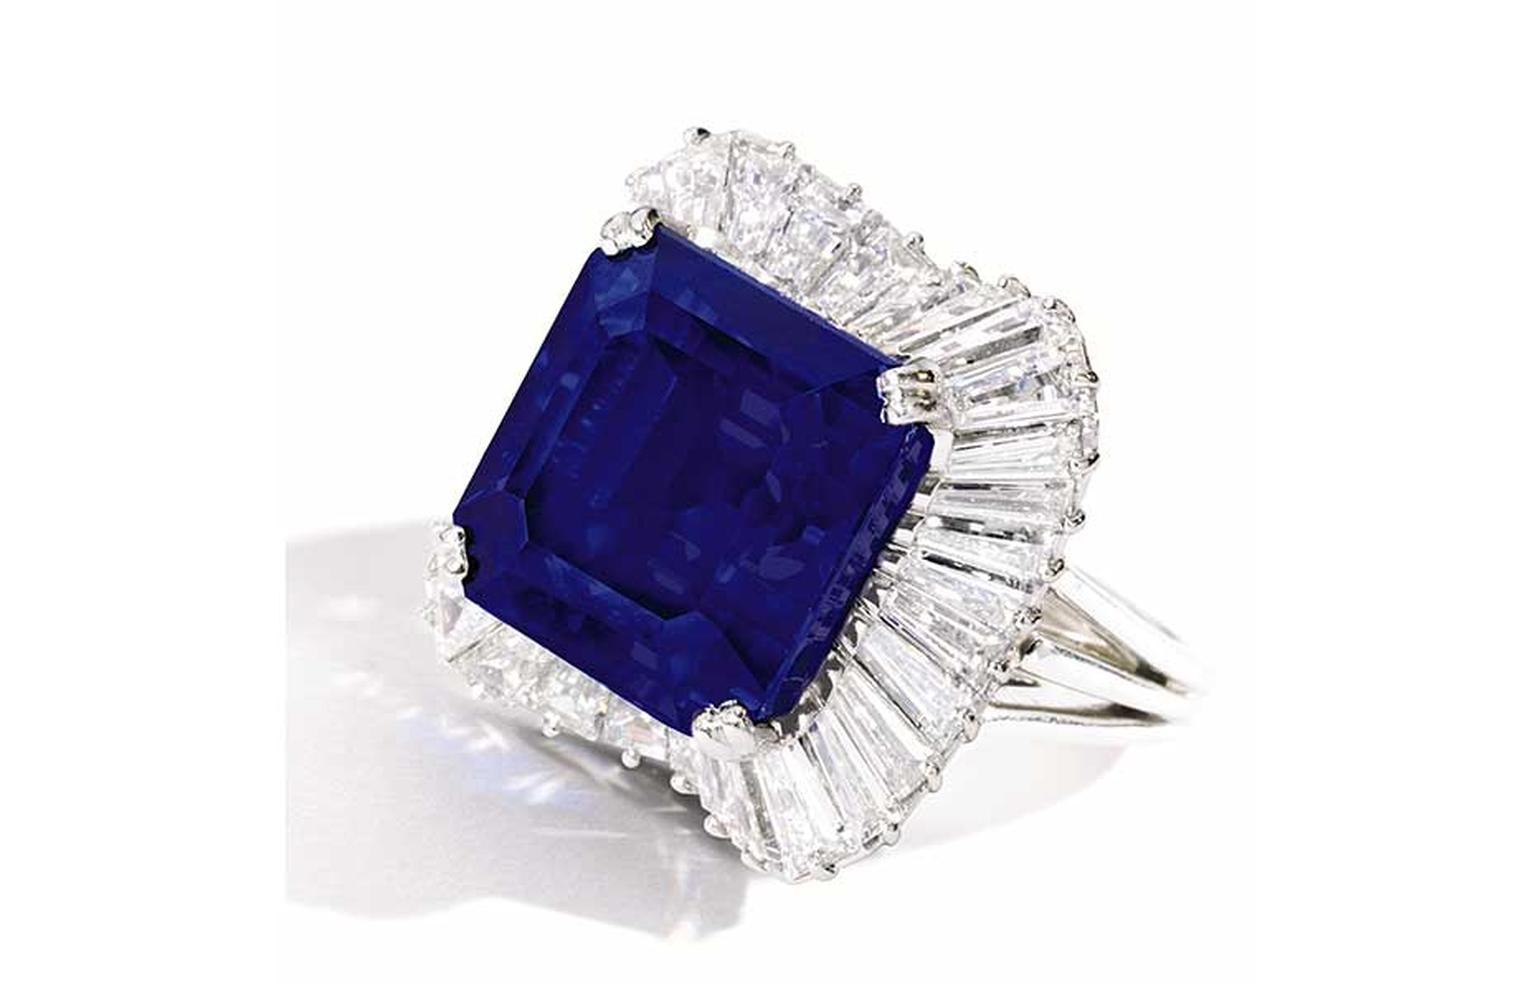 In April 2014, Sotheby's New York set a new world auction record price per carat for any sapphire when a 28.18ct Kashmir sapphire and diamond ring sold for $5,093,000, which is $180,731 per carat.